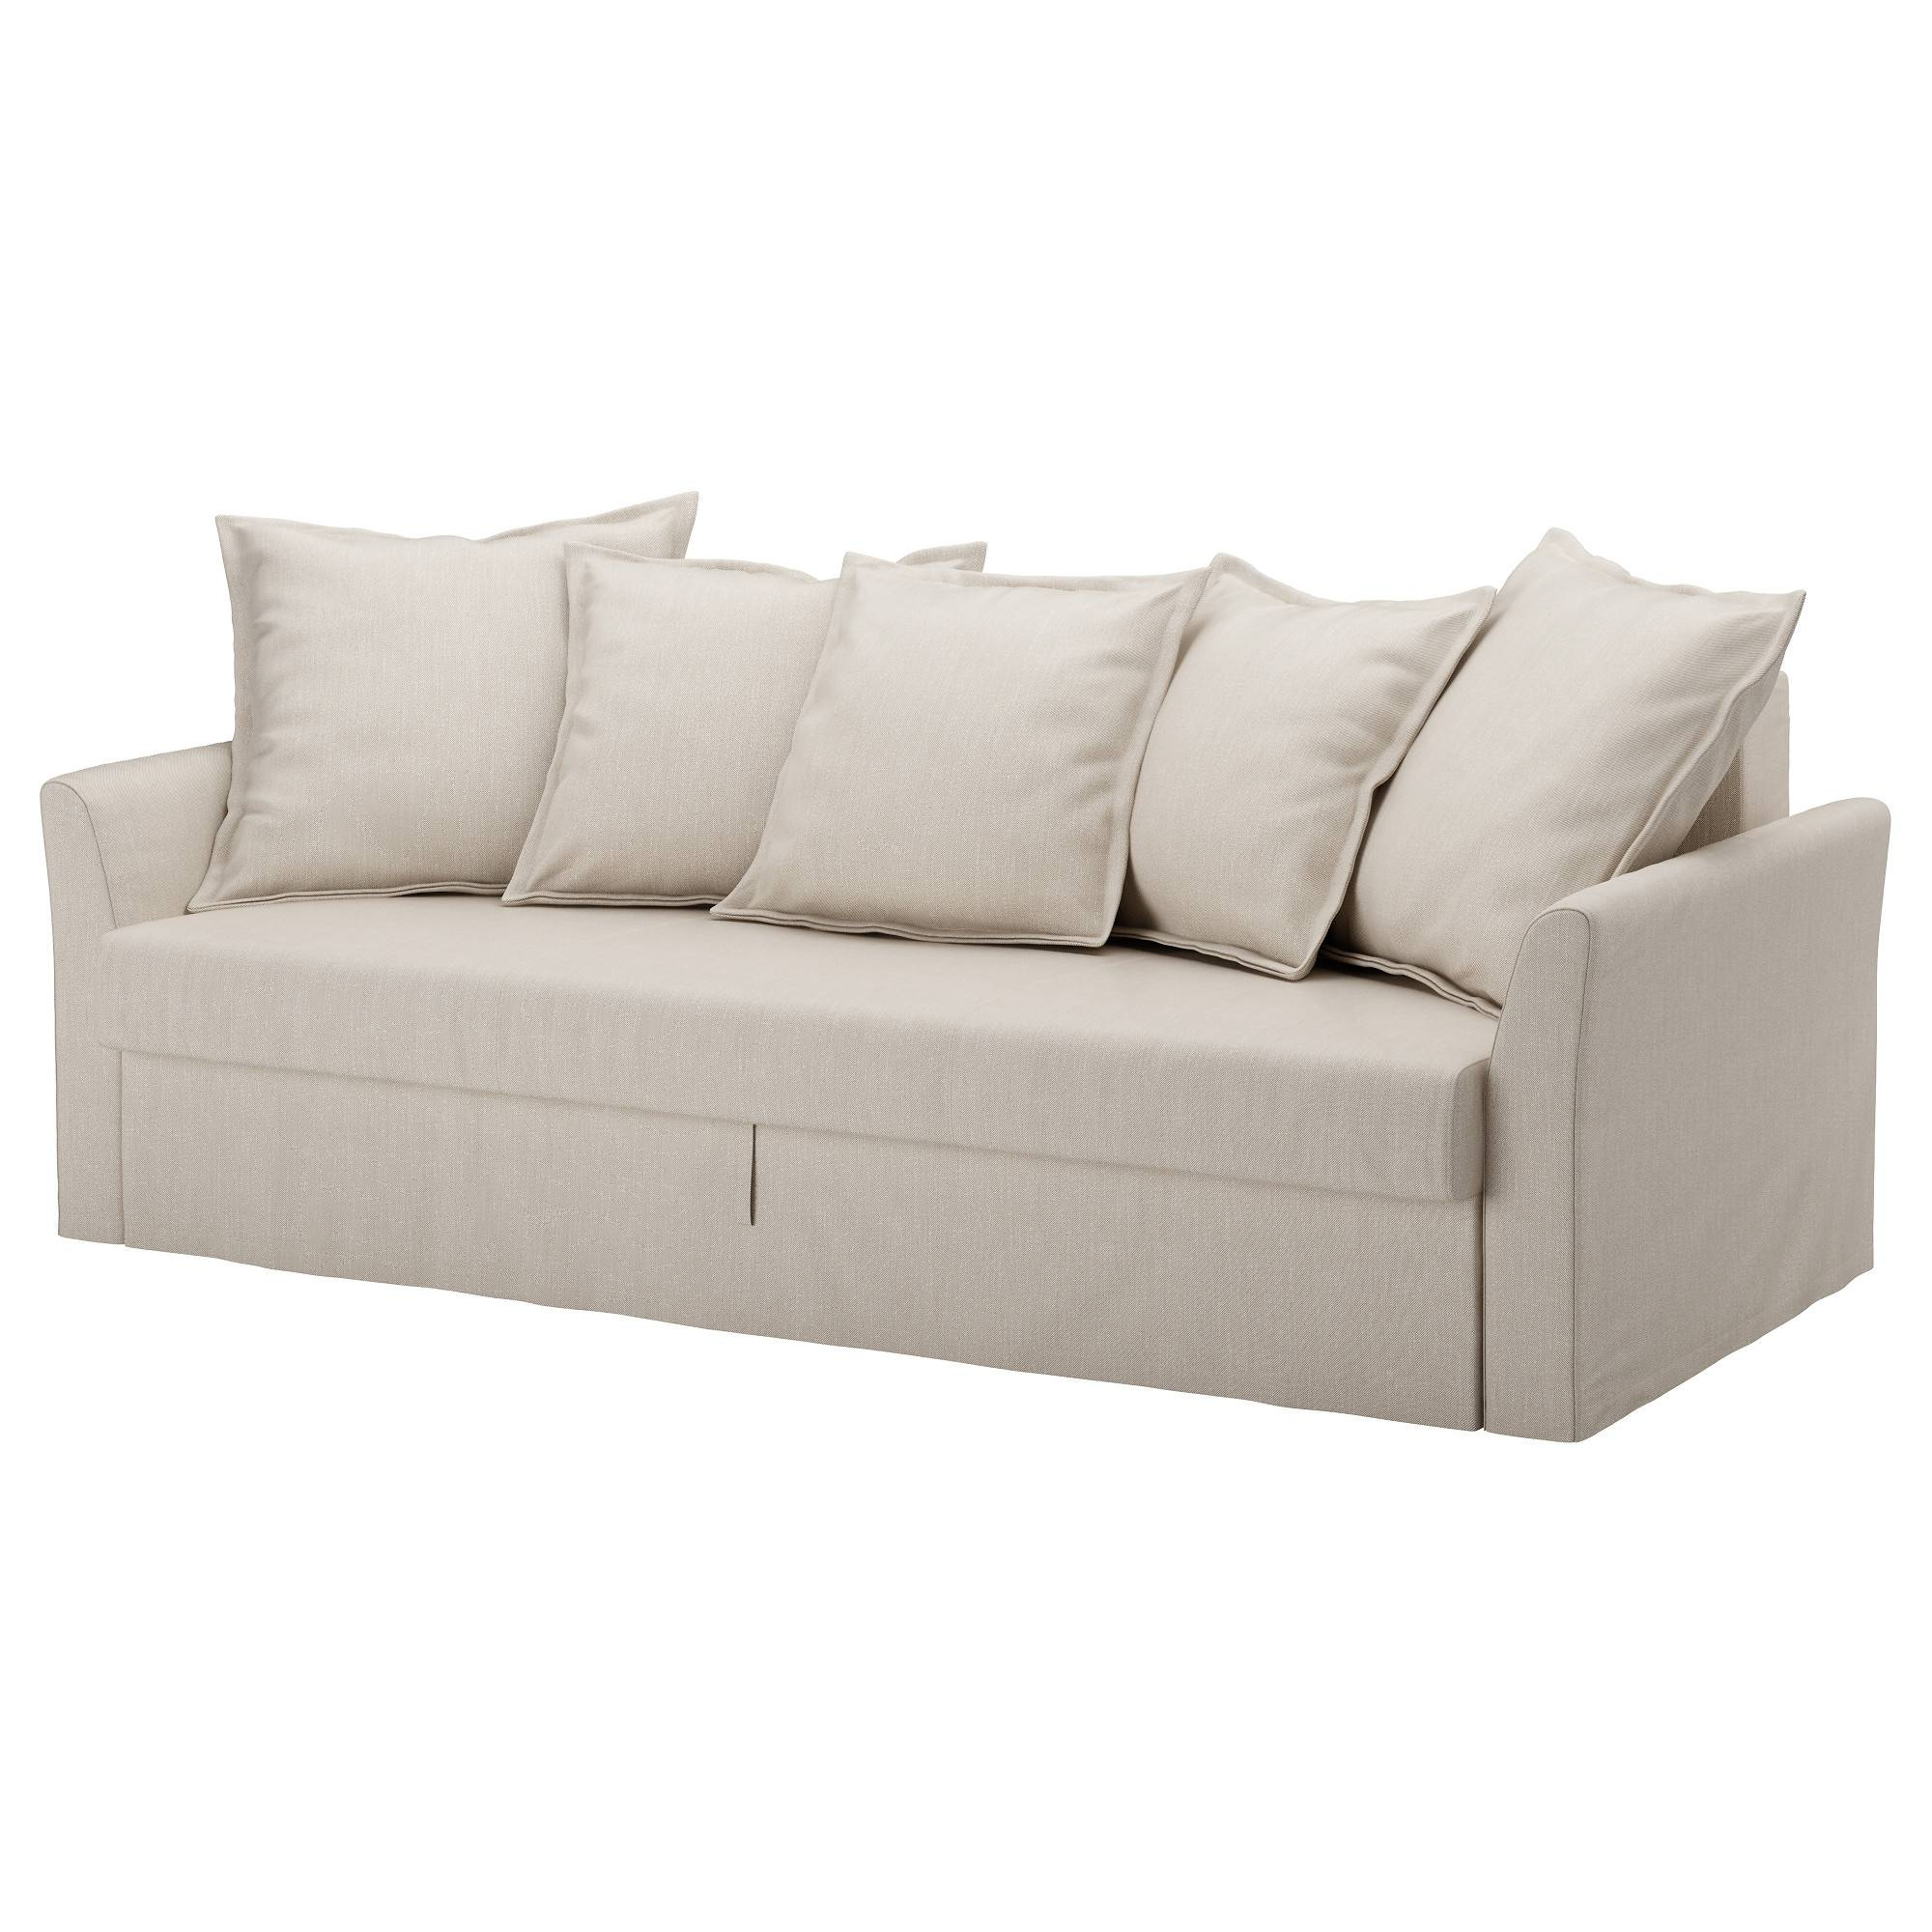 Sofa Beds & Chair Beds | Ikea Ireland – Dublin with Sofa Chairs for Bedroom (Image 13 of 15)